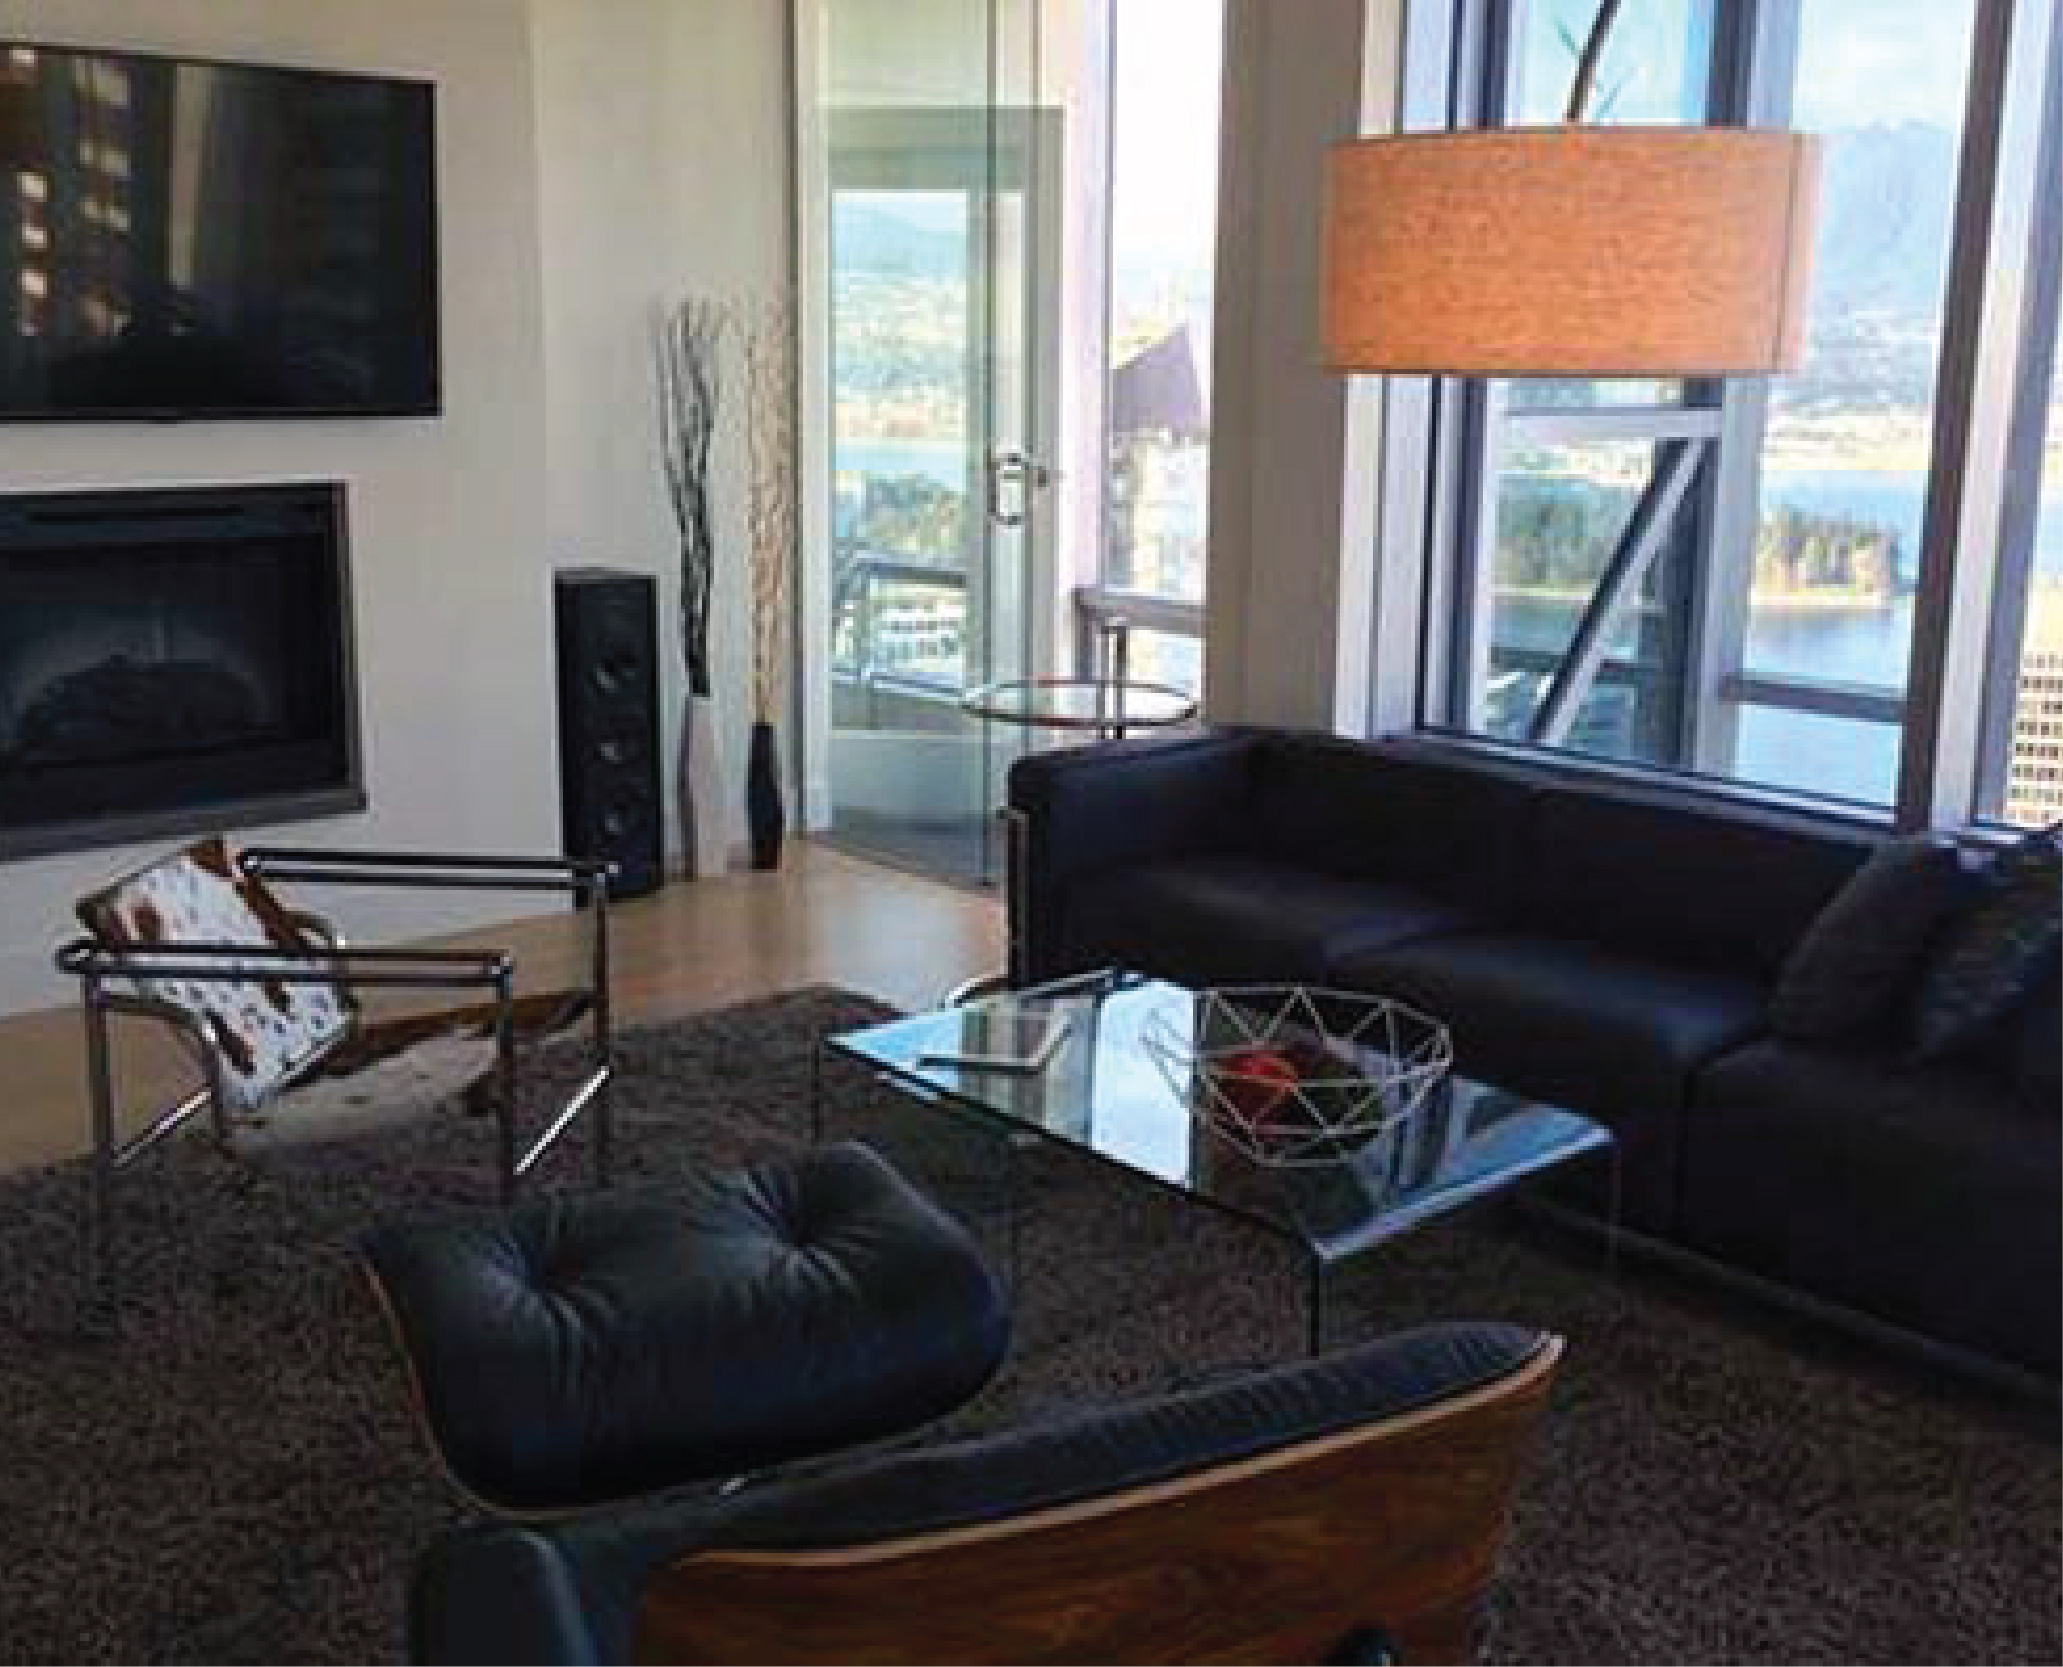 RESIDENTIAL LISTING IN THE LUXURIOUS SHANGRI-LA BUILDING